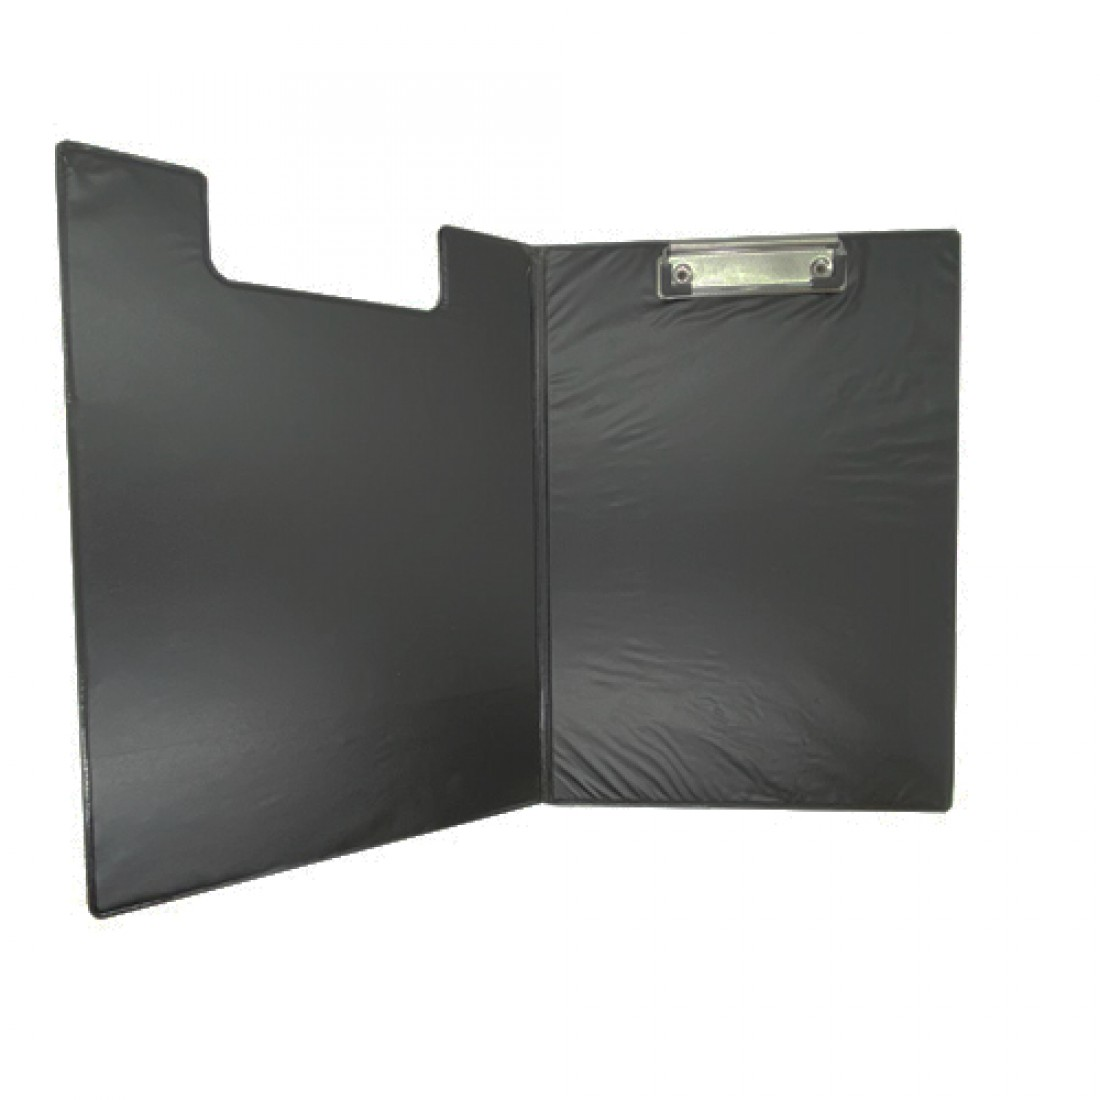 Clipboard, Double Plain Sheet Holder, Squire Printed, A4